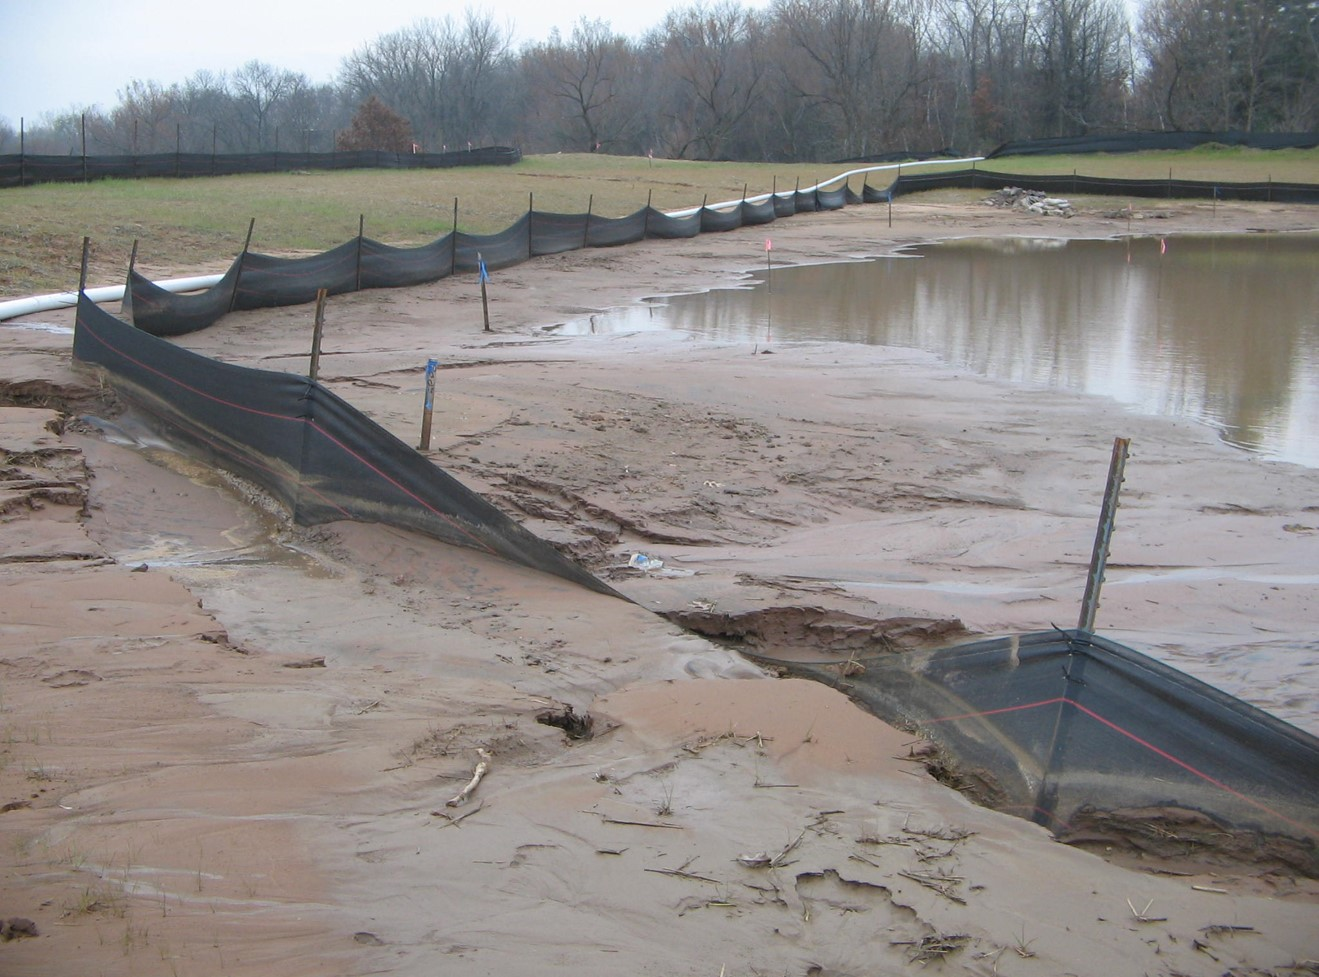 Lower flow rates, improper T-Post spacing, & non-reinforced silt fence fabric combine for a failed install.